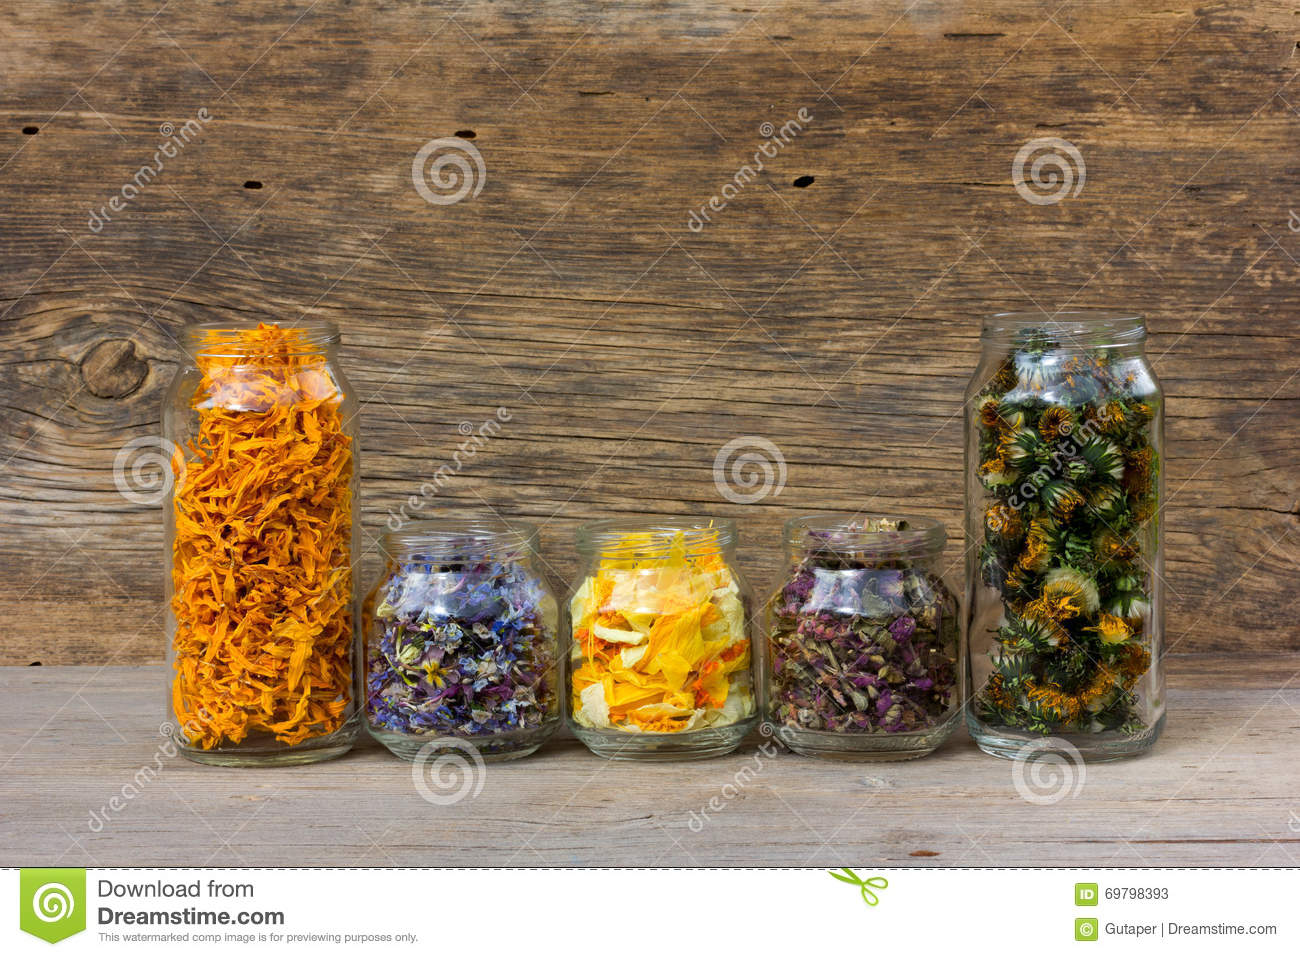 Herbs and flower petals in glass jar